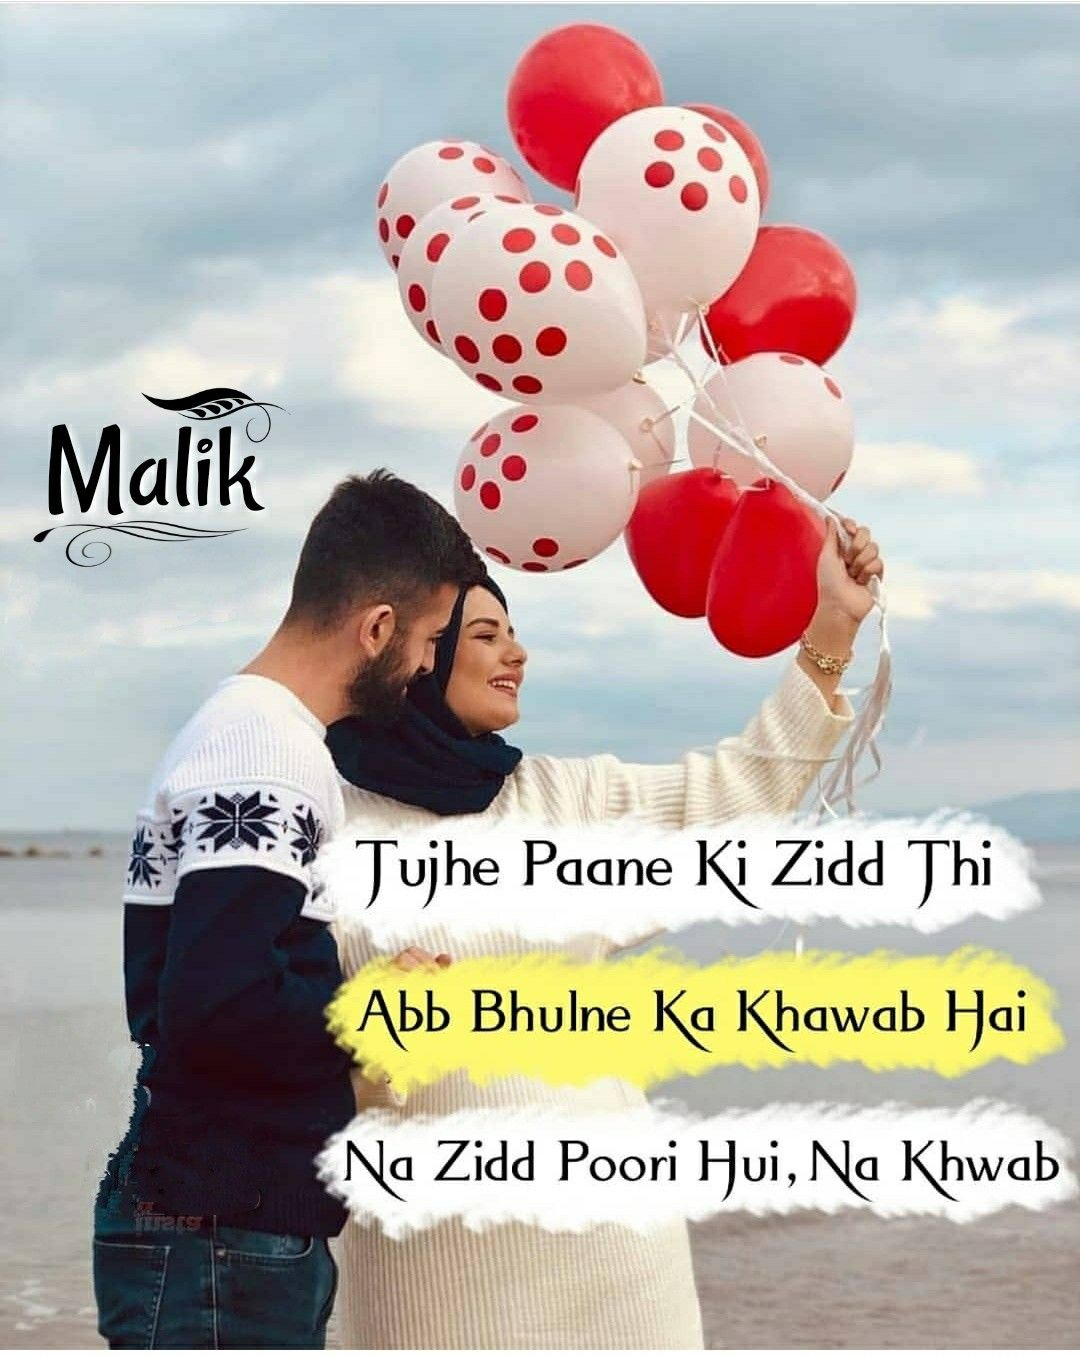 Malik Girly Quotes Emotional Quotes Attitude Quotes For Boys